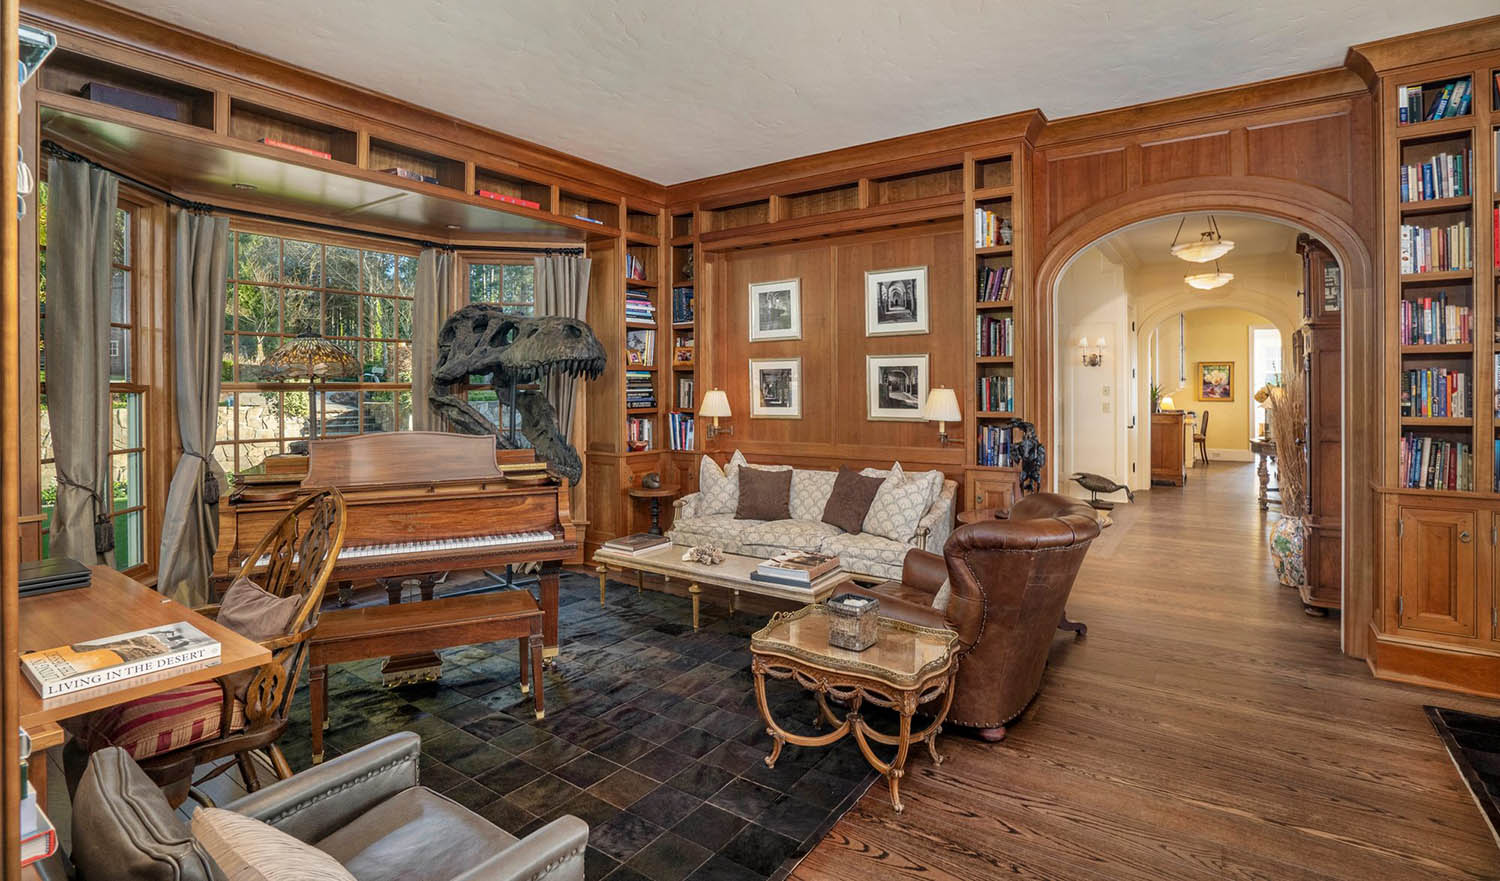 All wood walls with arched doorway. Woof floors with area rugs. Wood built ins.